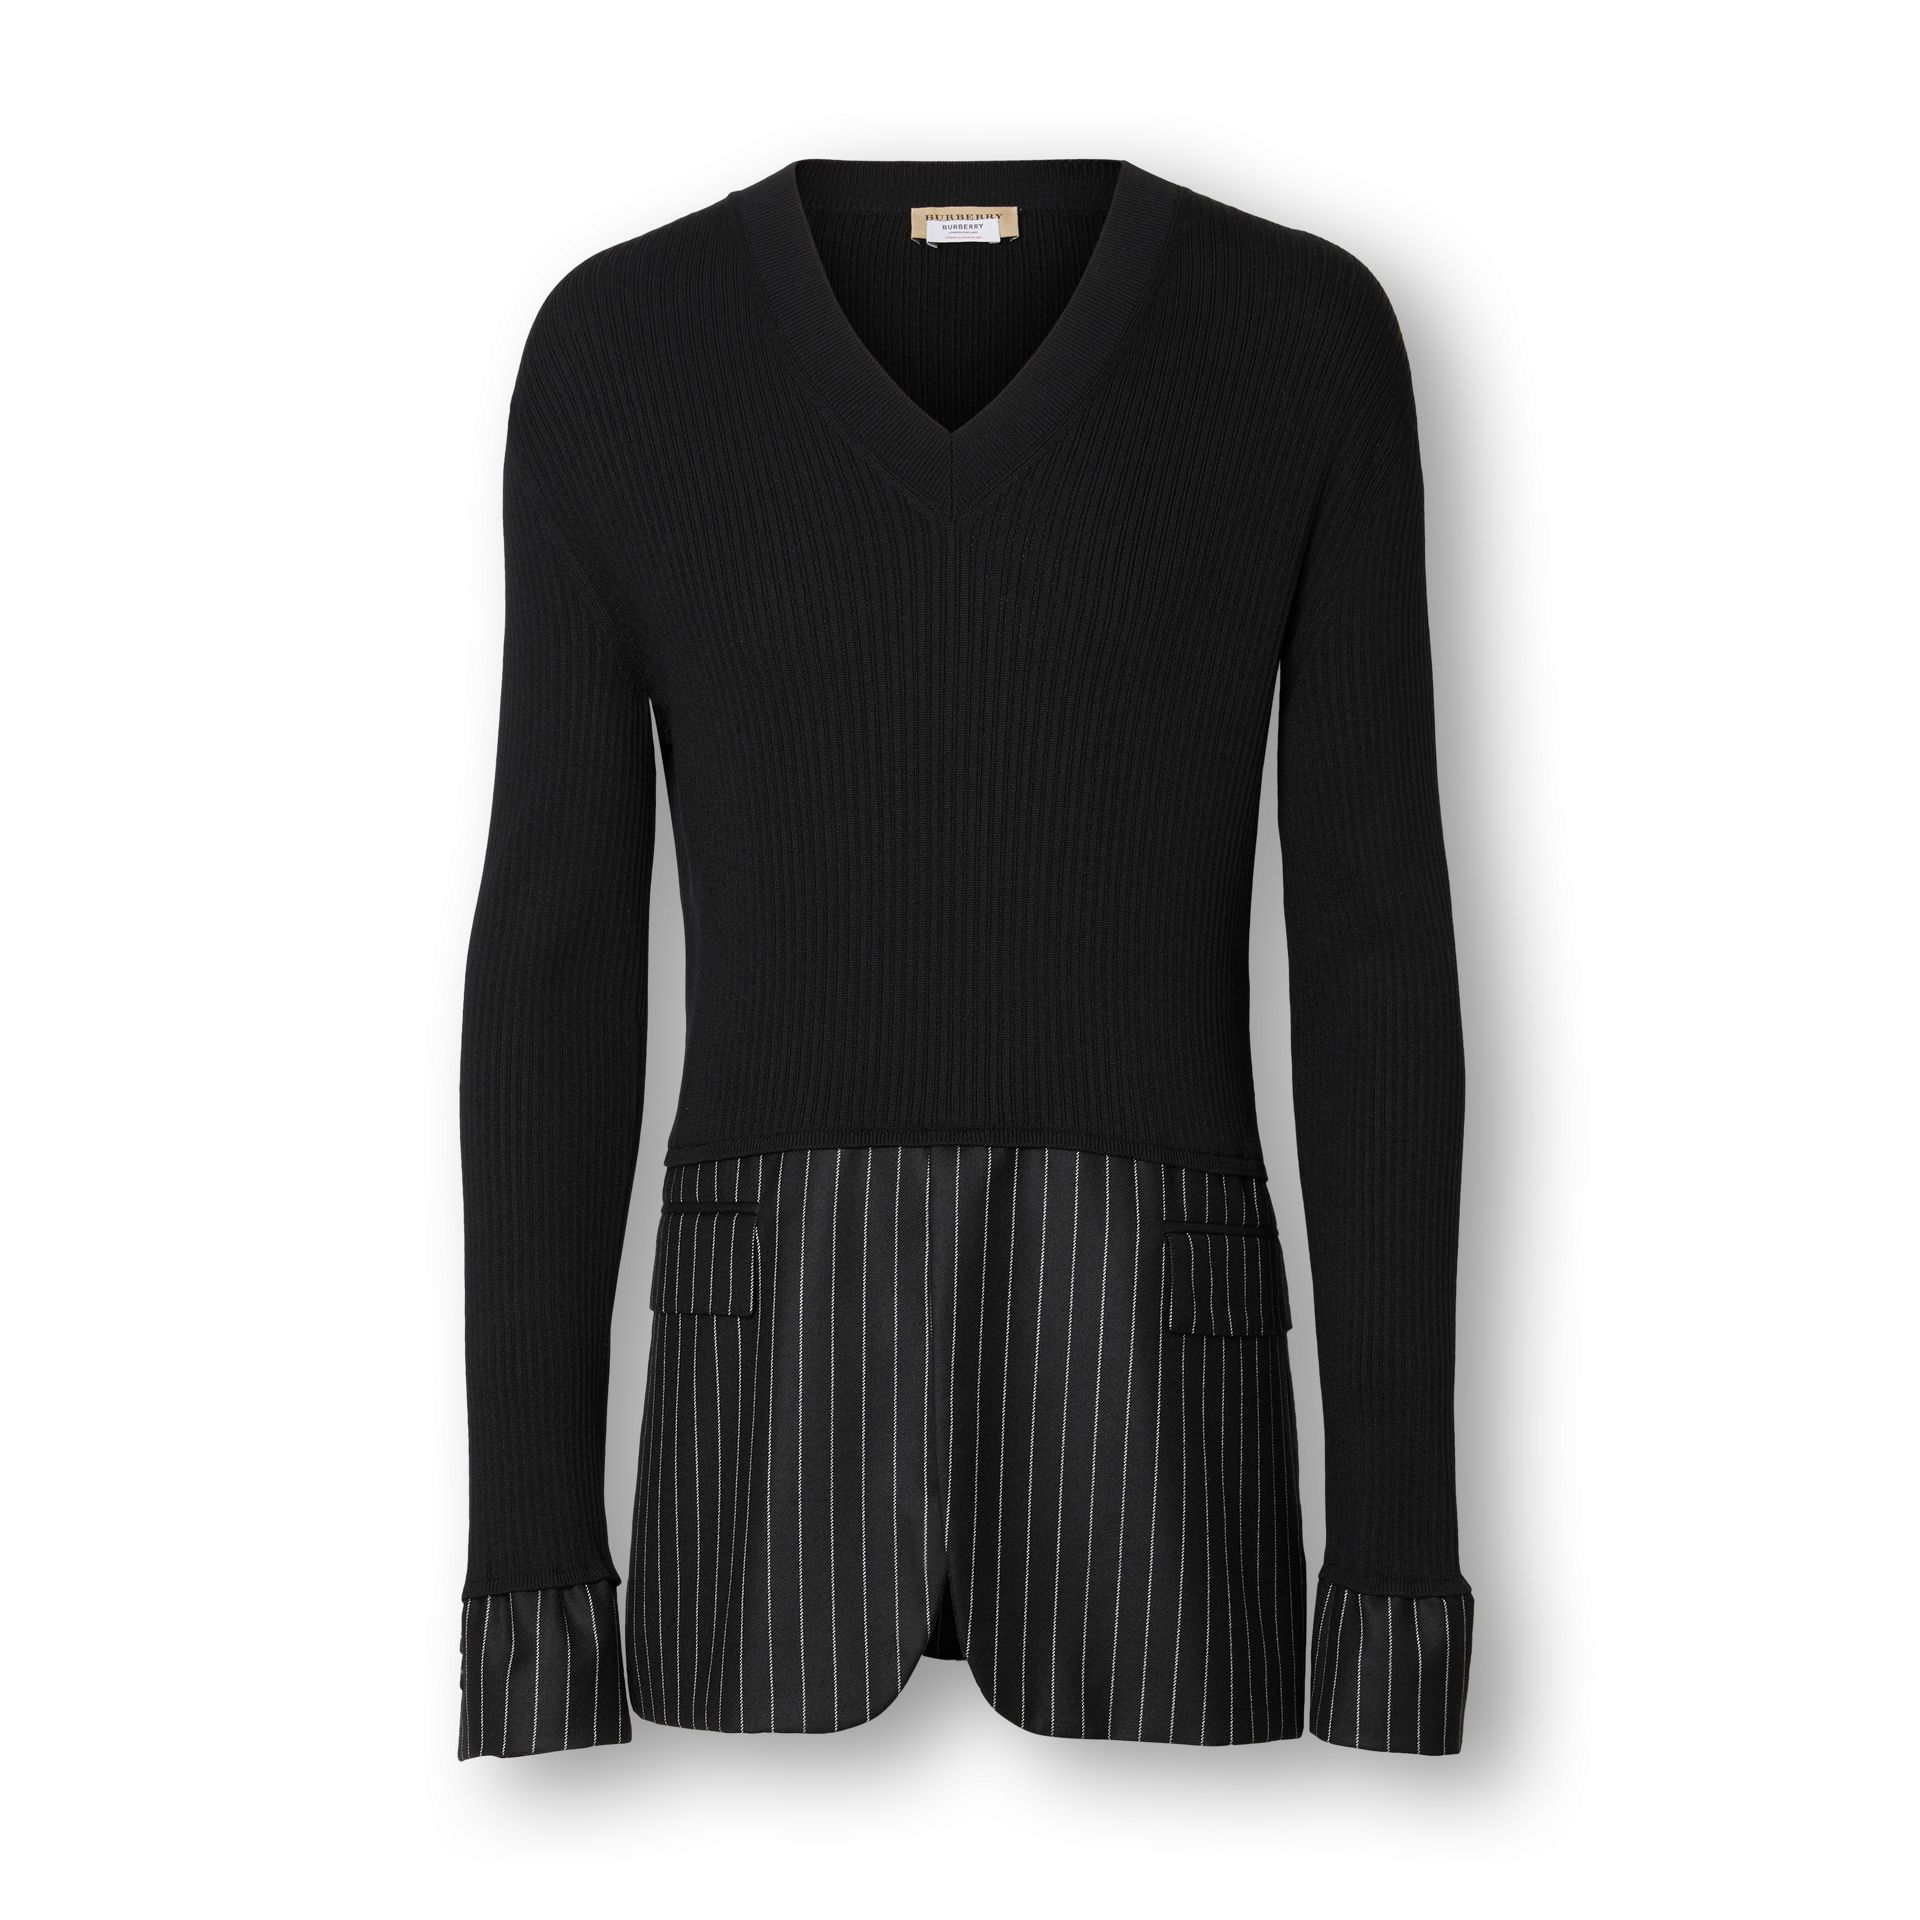 Tailored Panel Rib Knit Silk Blend Sweater in Black | Burberry United Kingdom - gallery image 3